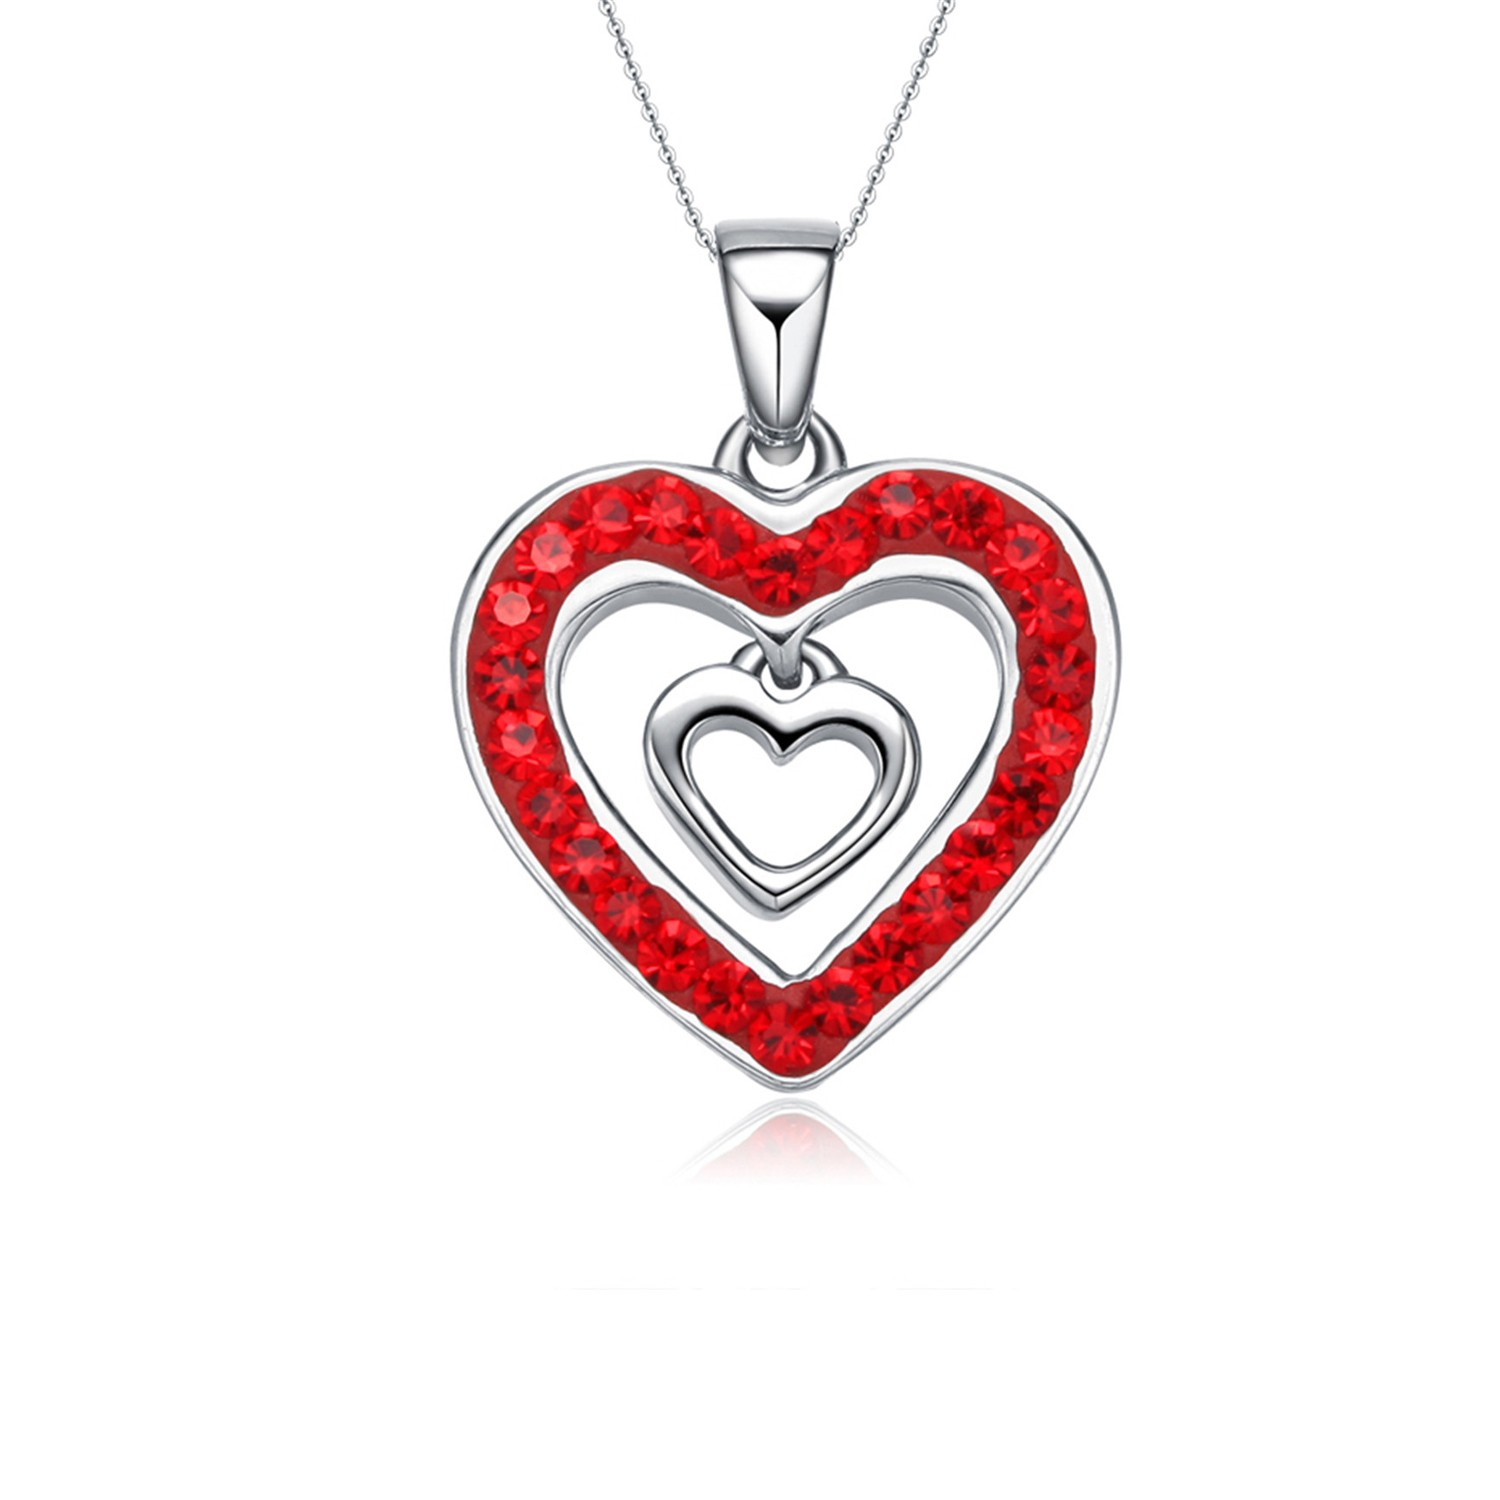 Women Jewelry Red Cubic Zirconia Love Heart Pendant Necklace 925 Sterling Silver